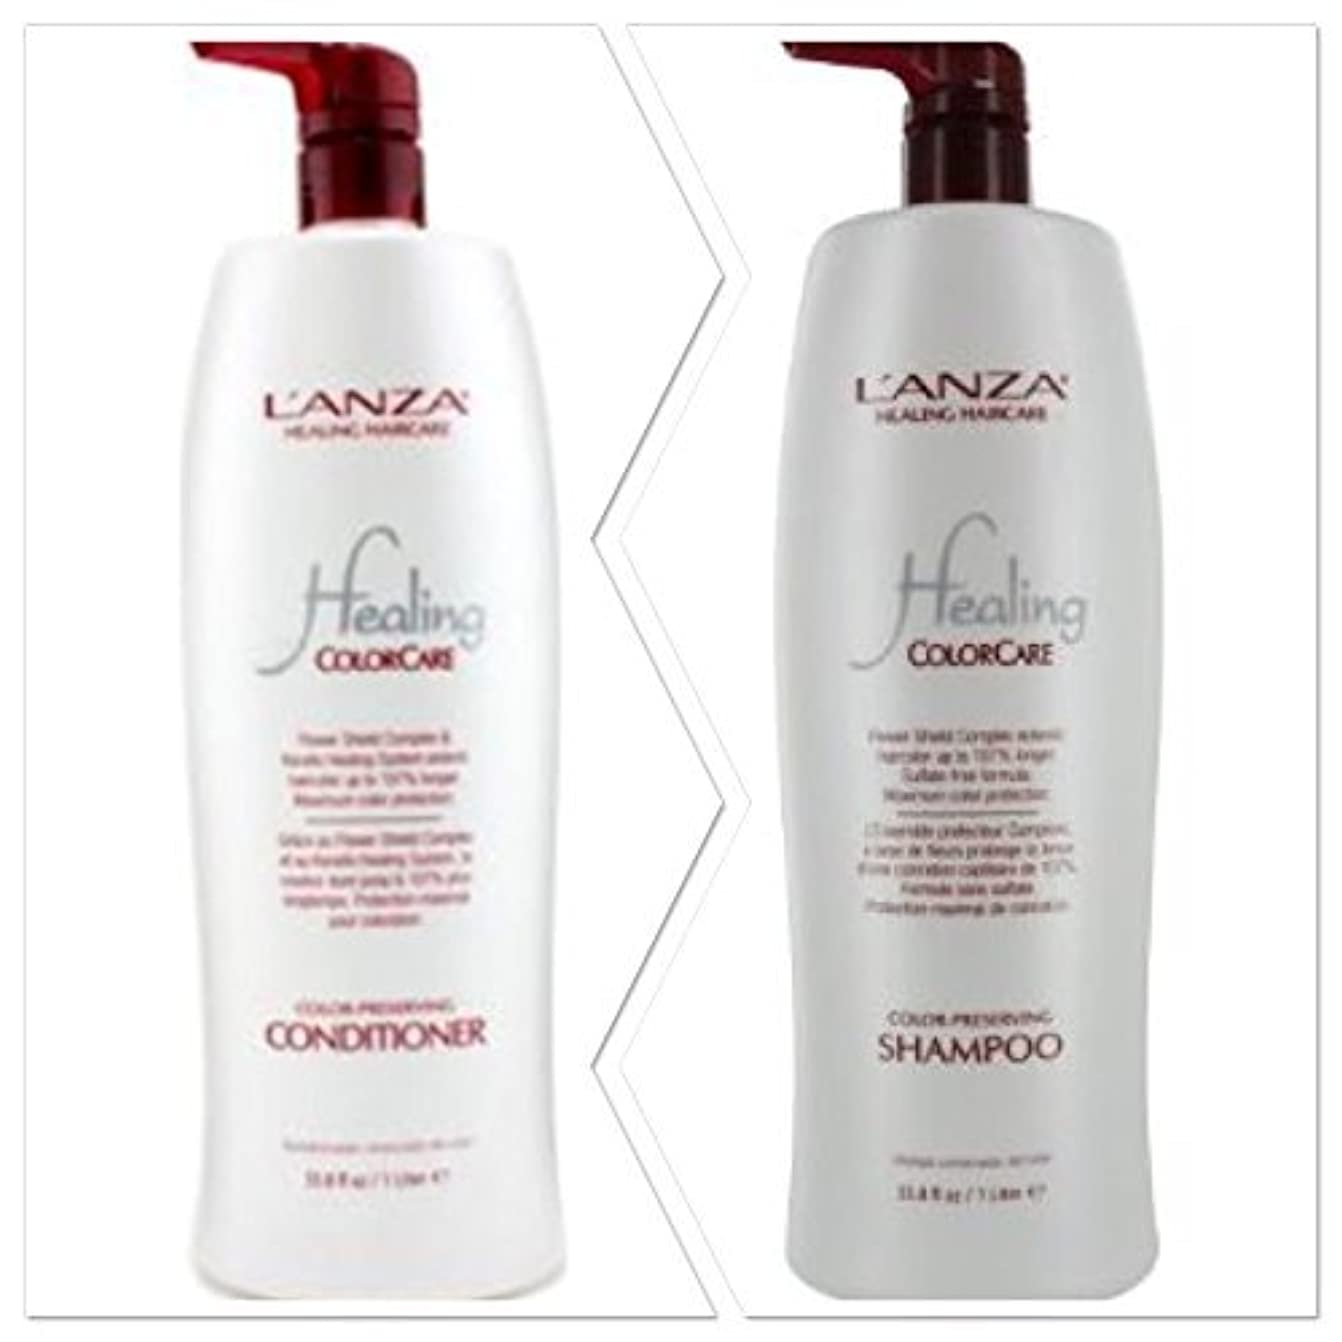 思い出すカスタム暗殺するL'anza Healing Colorcare Color-preserving Shampoo + Conditioner Dou (33.8 oz (1Liter)) by L'anza